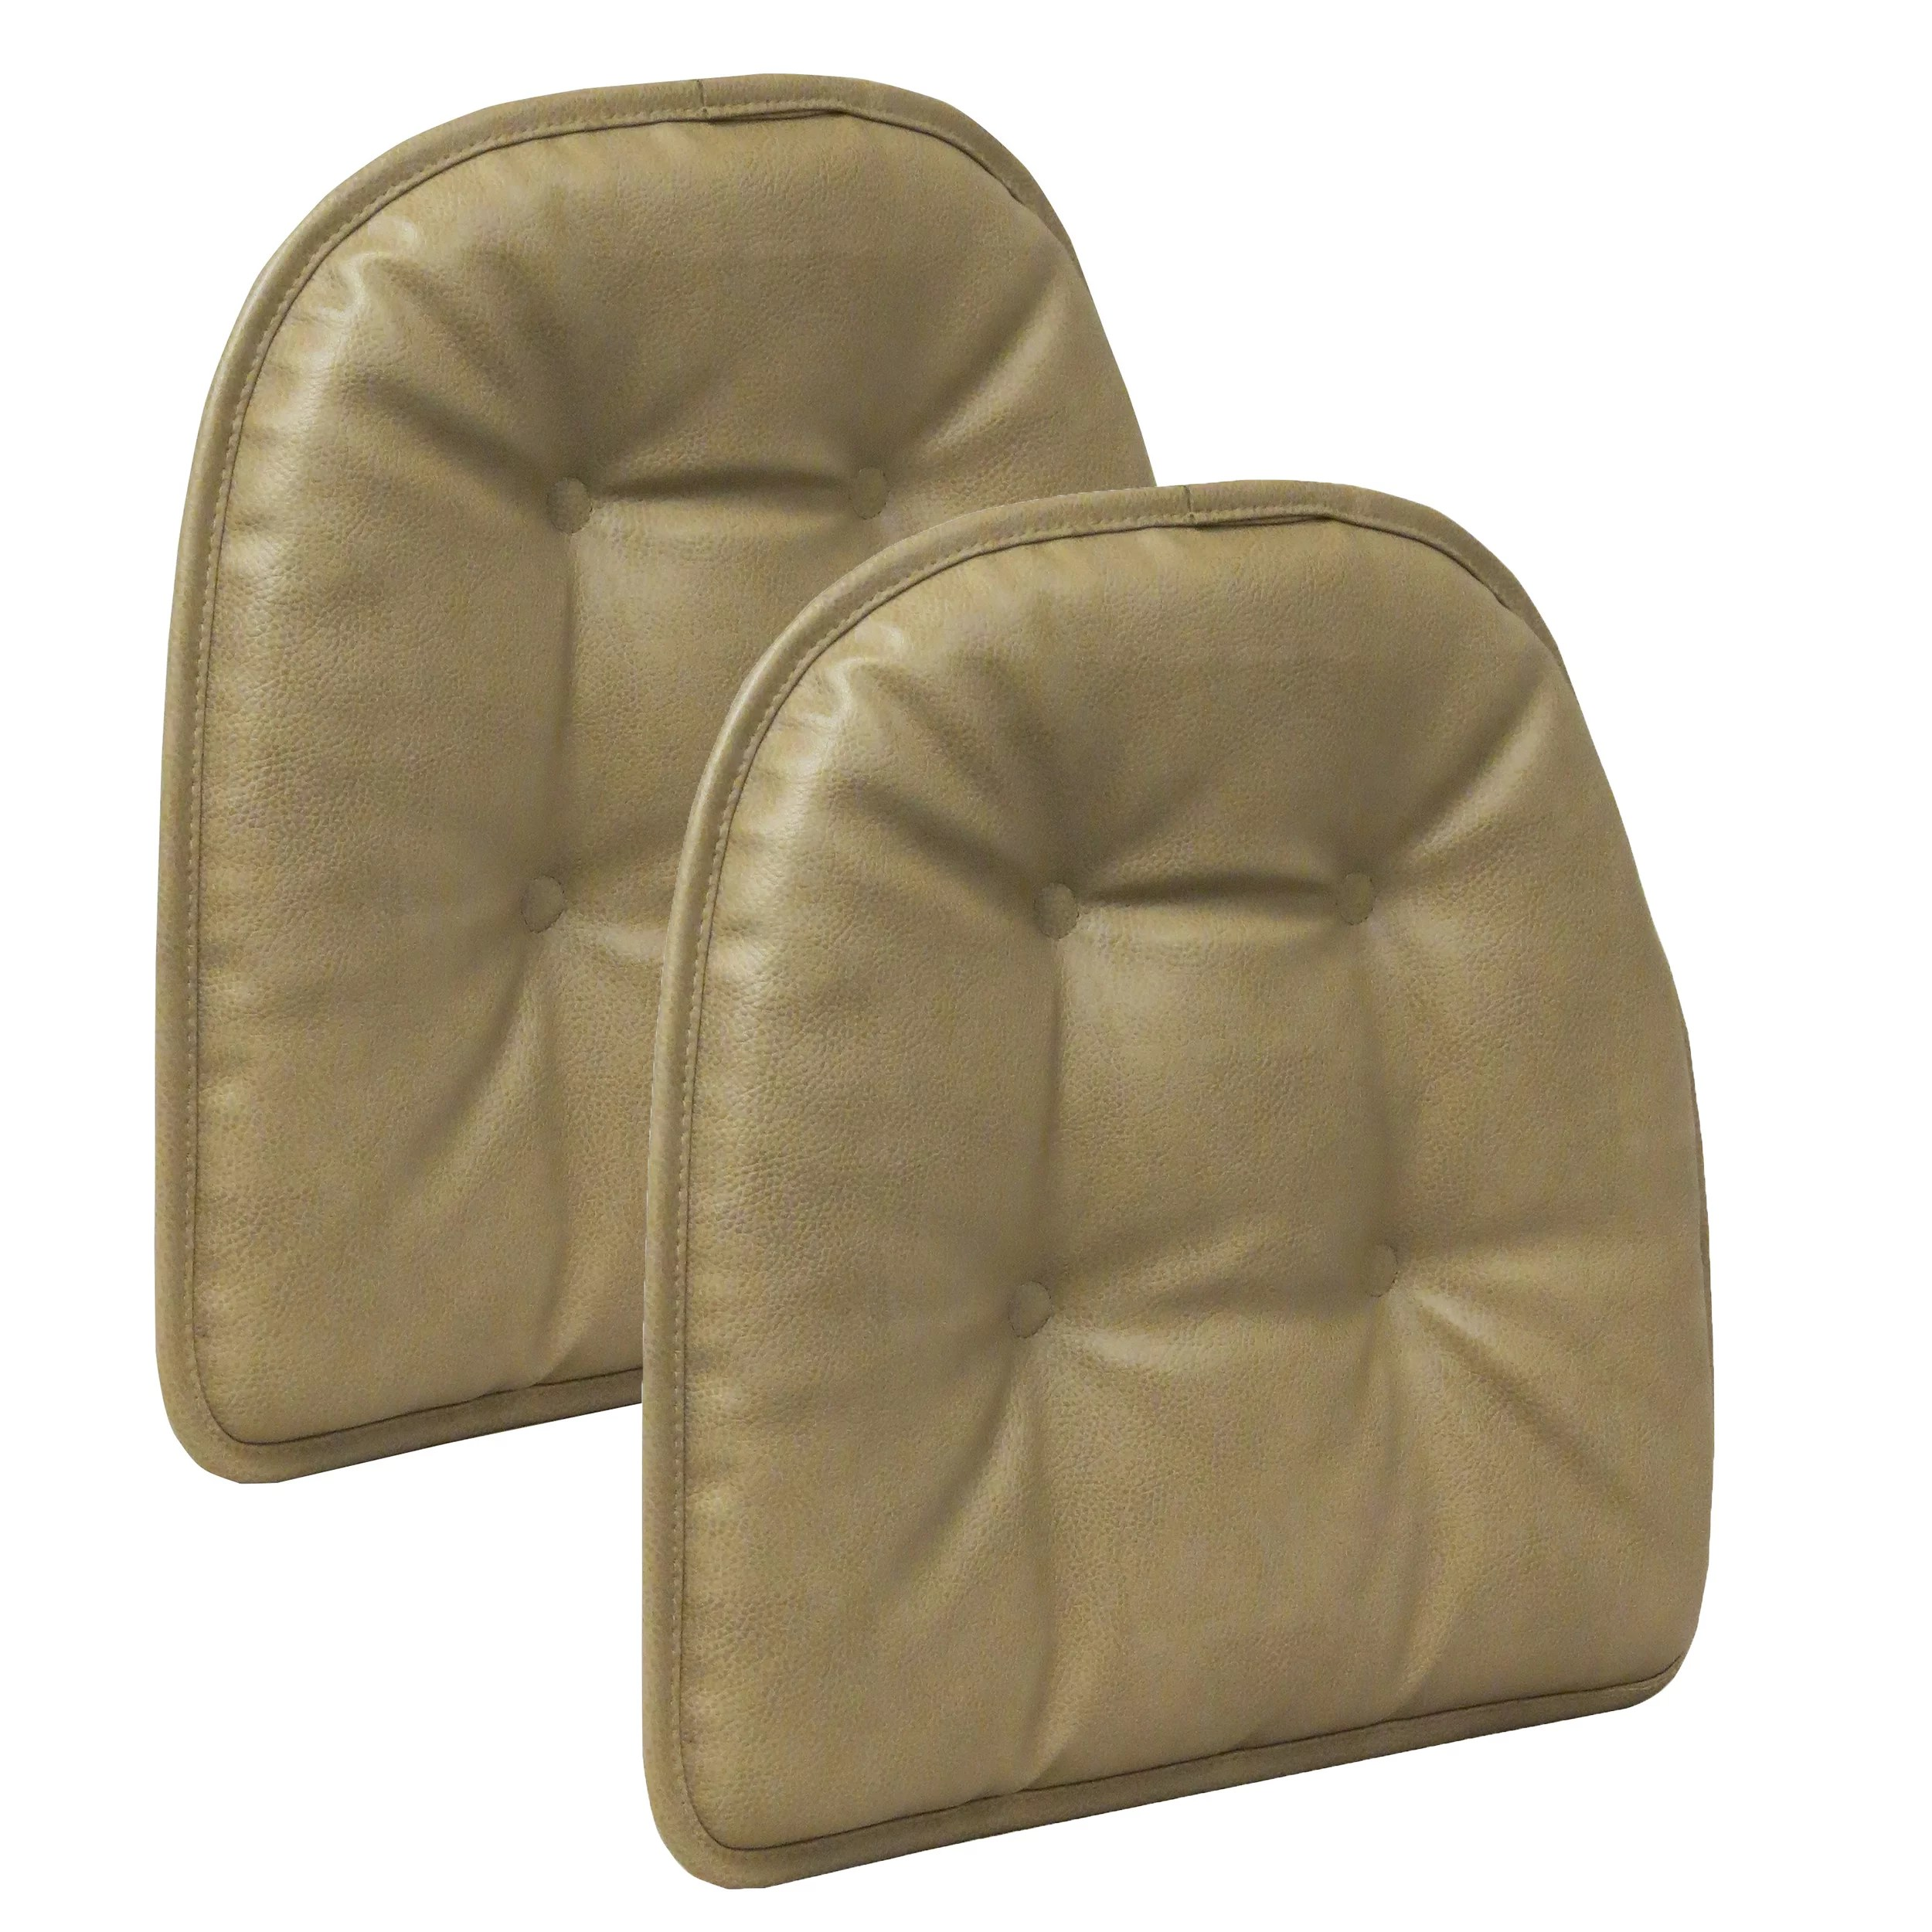 leather chair pads covers in ebay gripper non slip 15 x 16 faux tufted cushions set of 2 walmart com